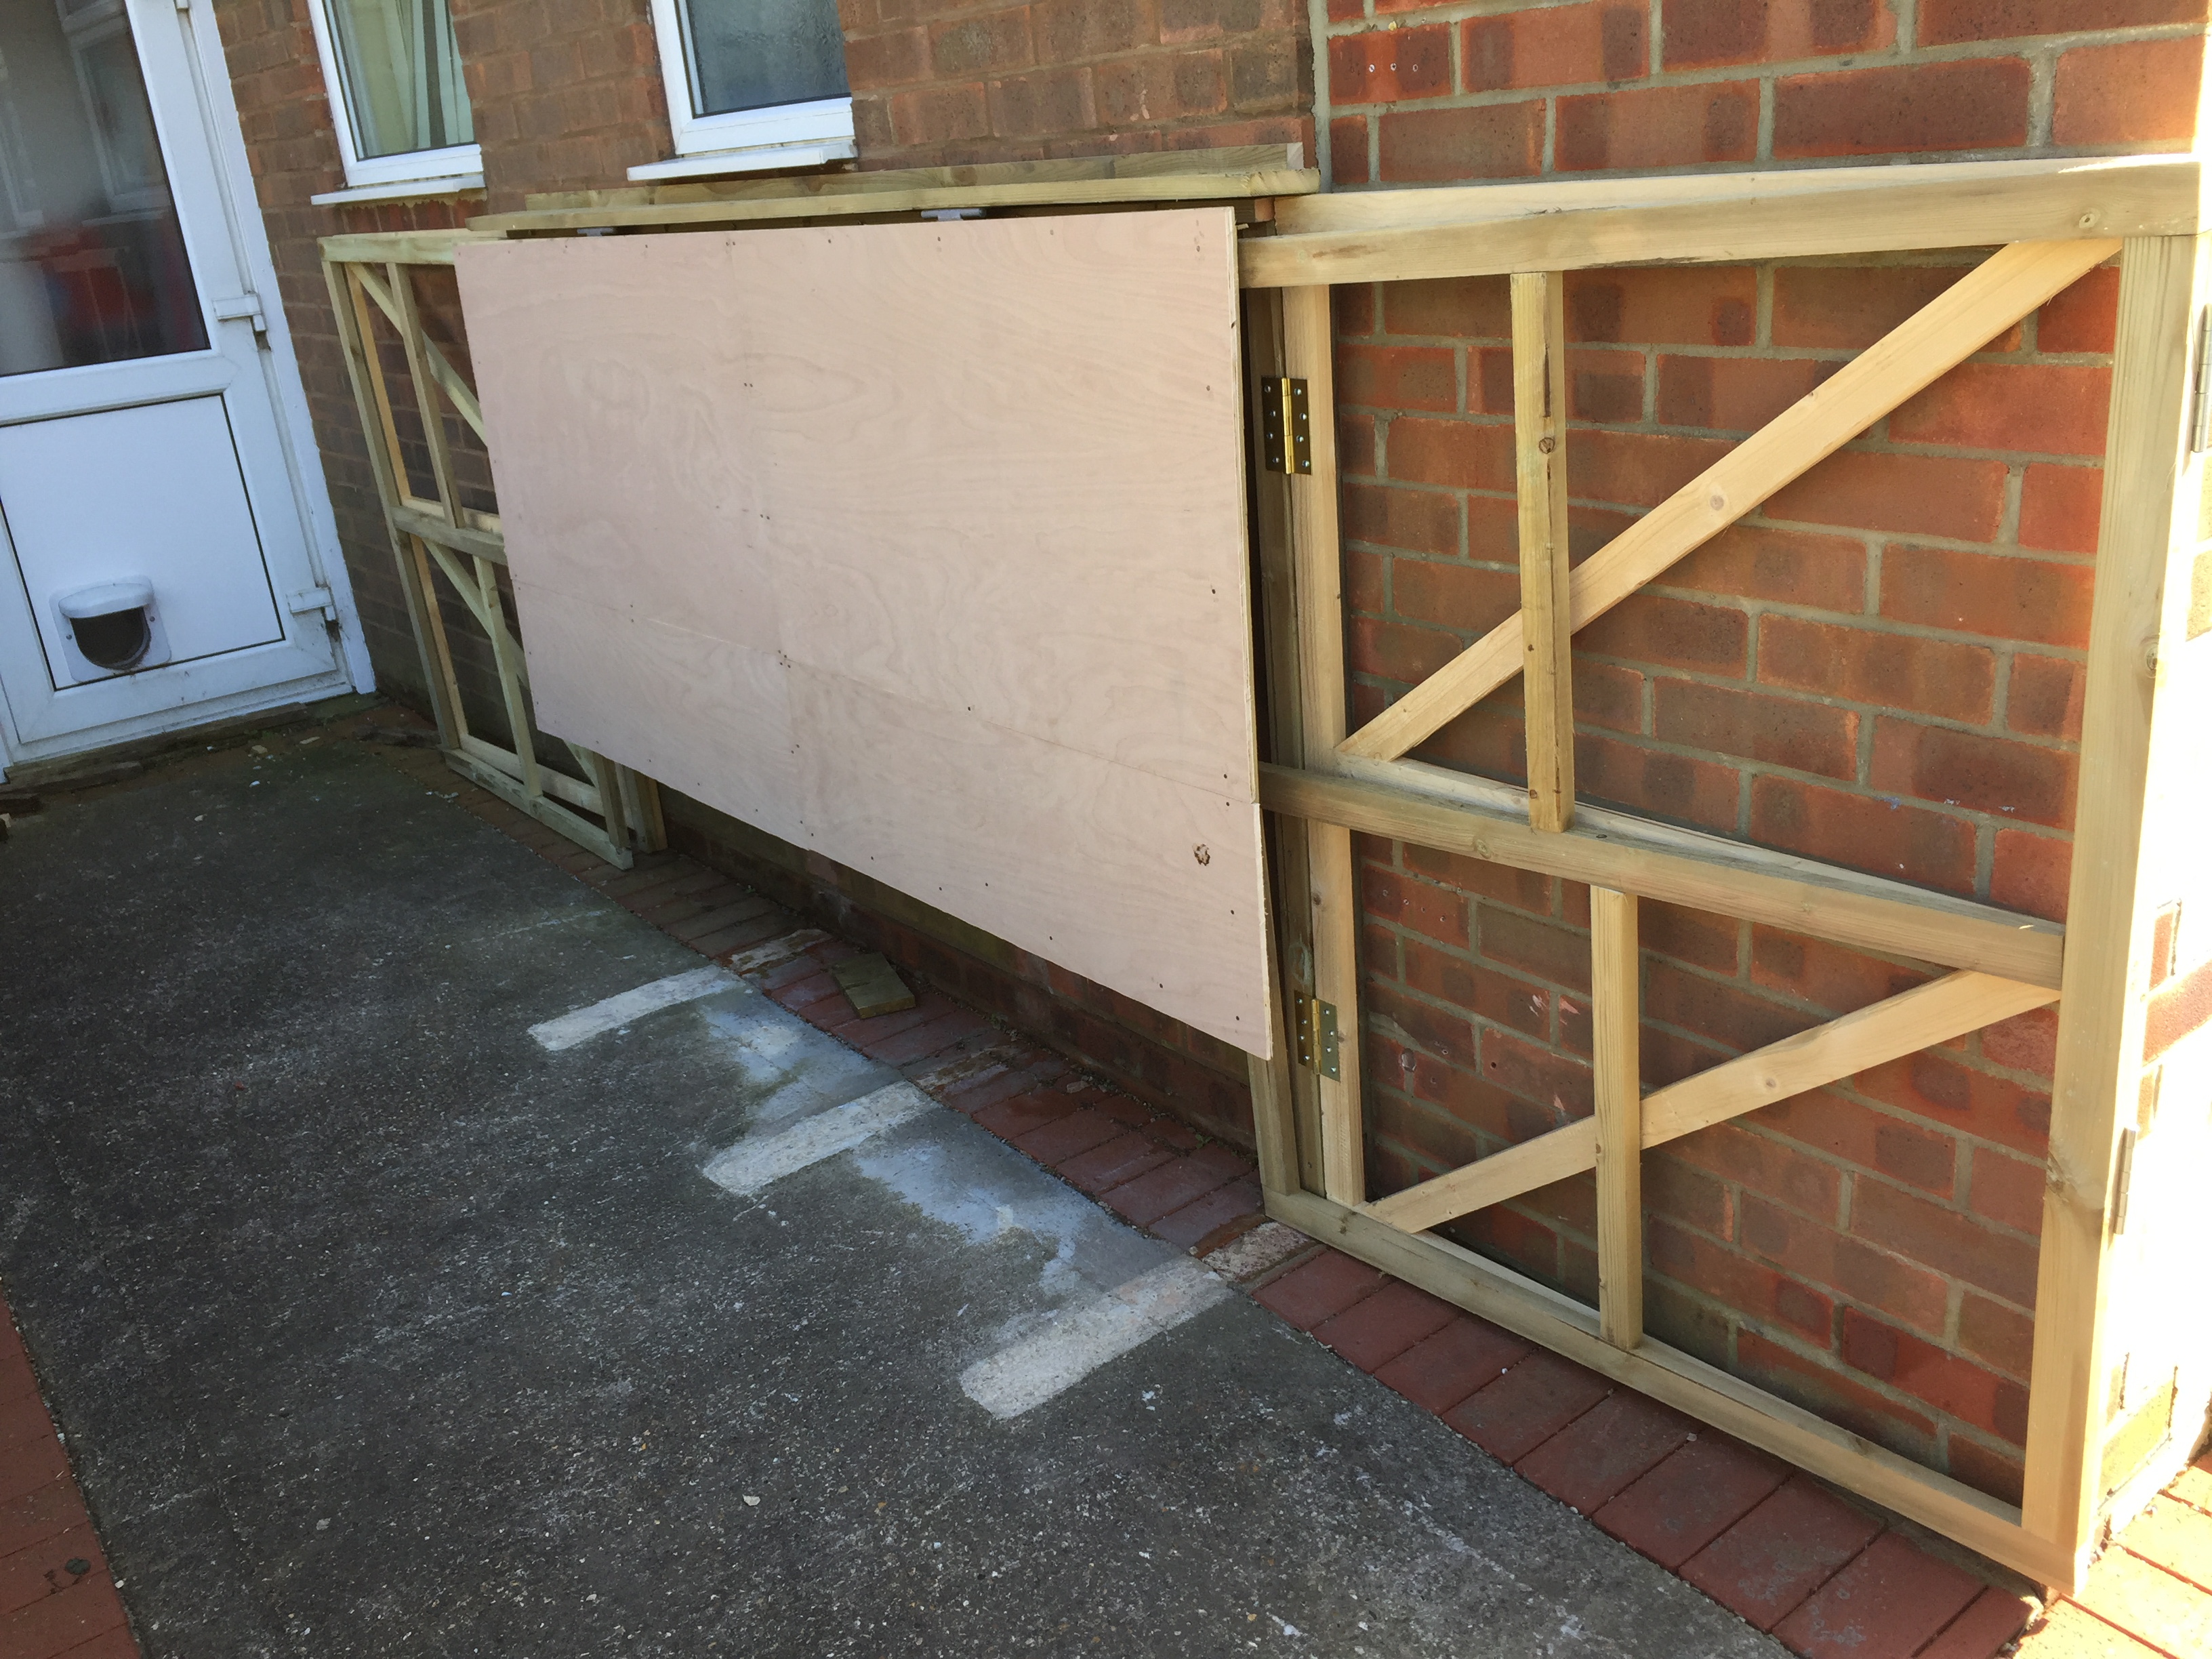 How I Made a DIY Foldaway / Pop-Up Motorcycle Shed